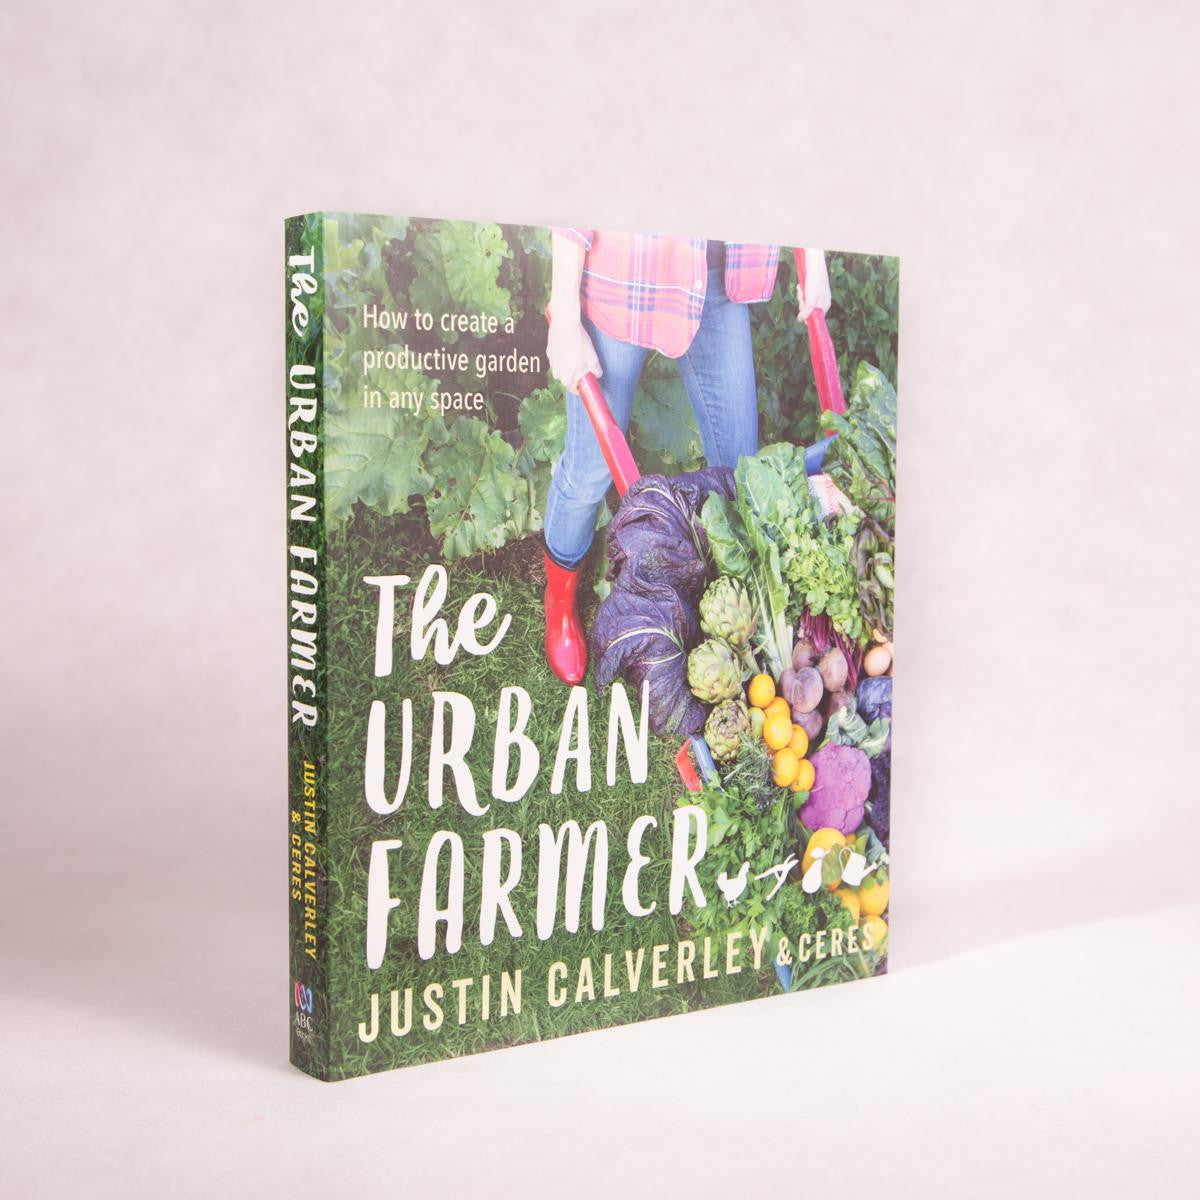 The Urban Farmer | By Justin Calverley & Ceres - Book - Throw Some Seeds